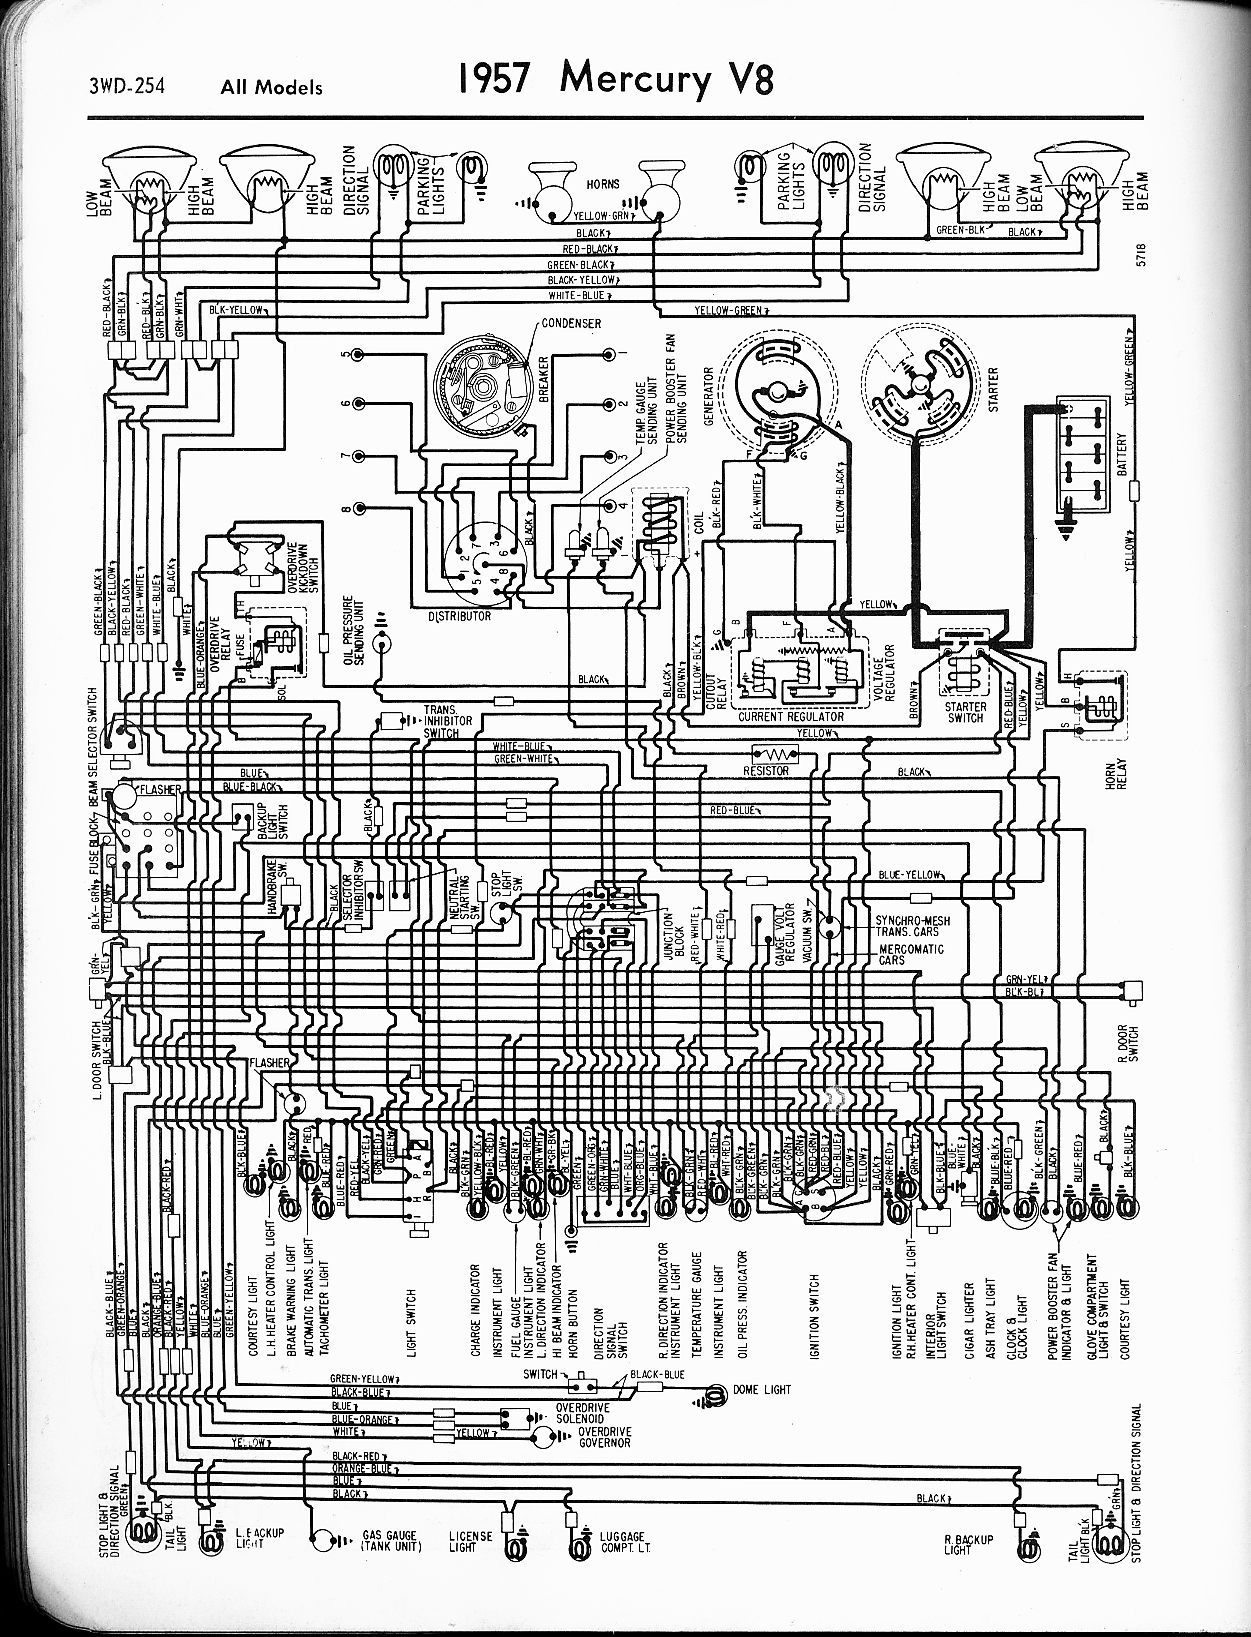 hight resolution of 1956 mercury wiring diagram wiring diagram expert1956 mercury wiring diagram